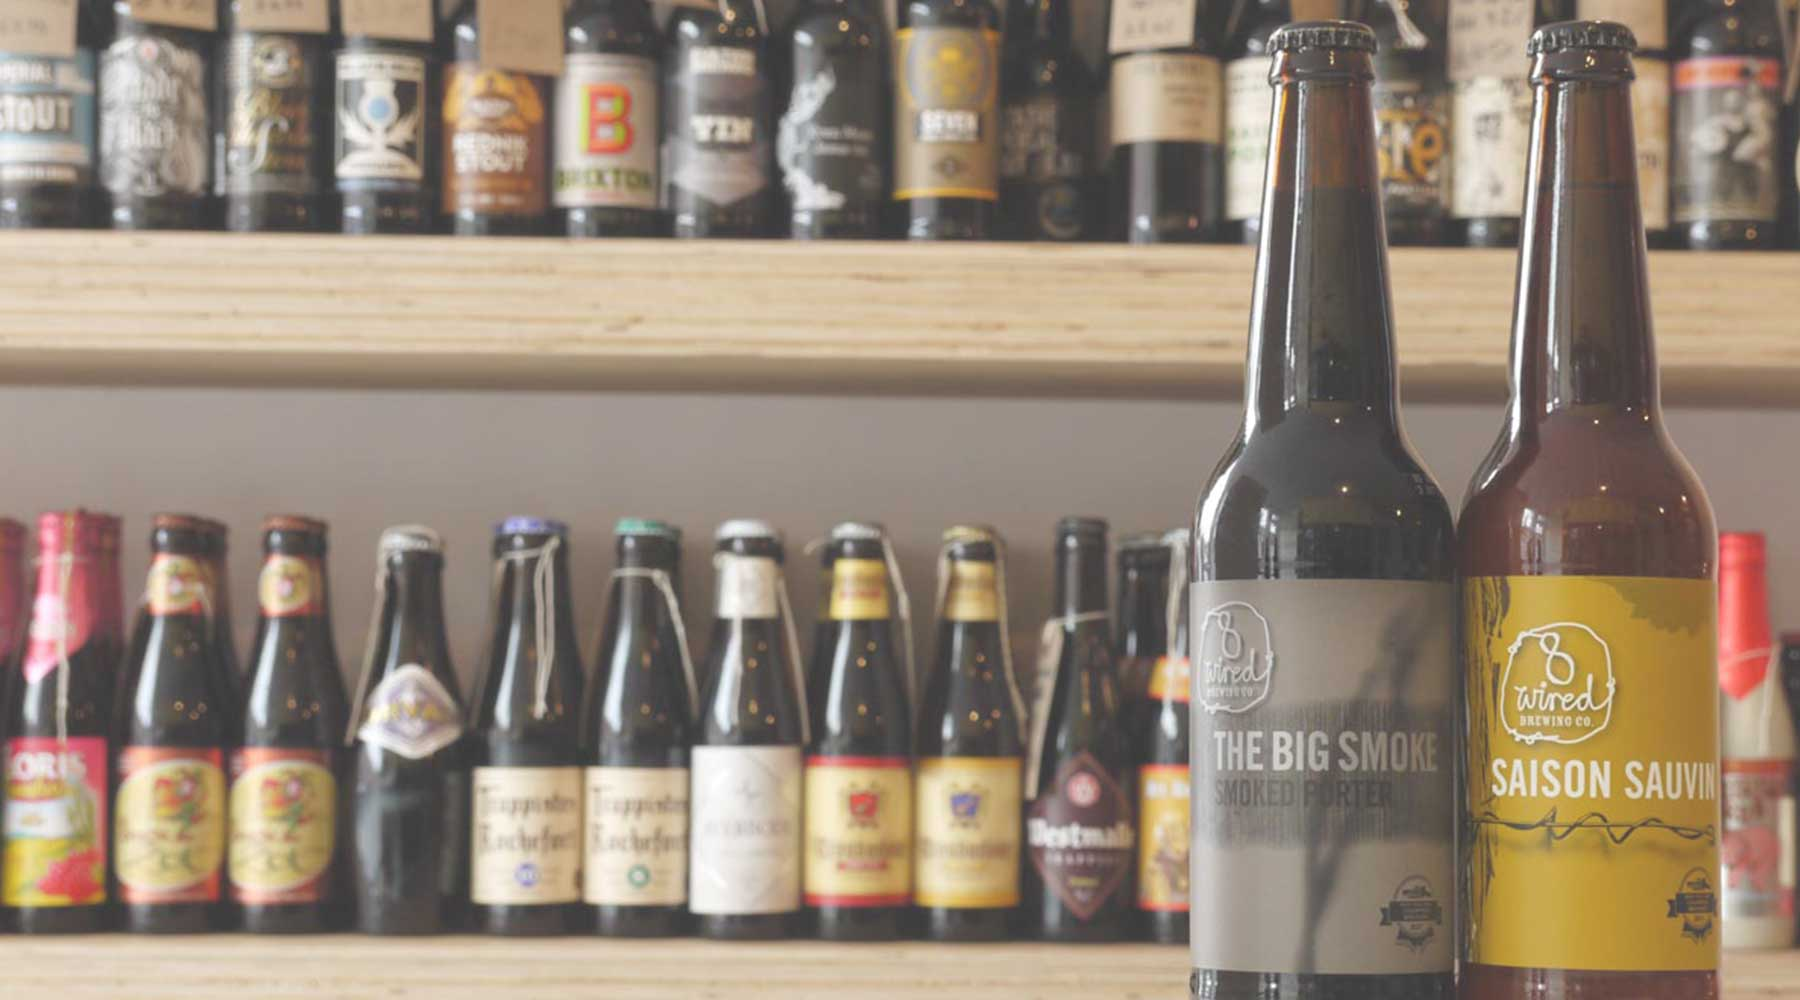 8 Wired Brewing | Just Wine